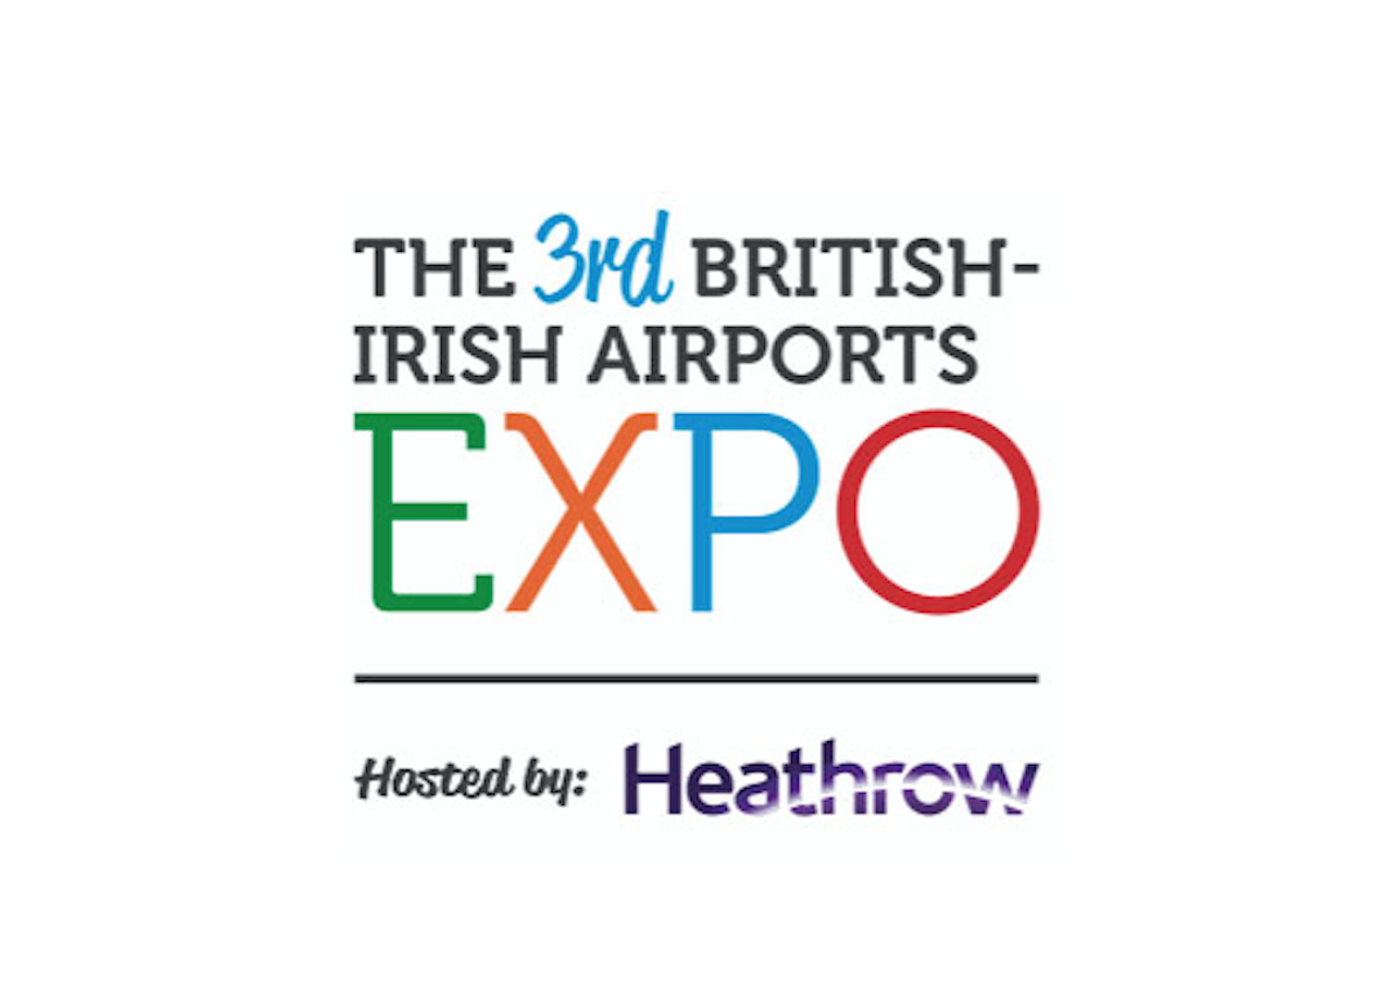 ICTS UK & Ireland is appointed official security provider at the British-Irish Airports EXPO 2018